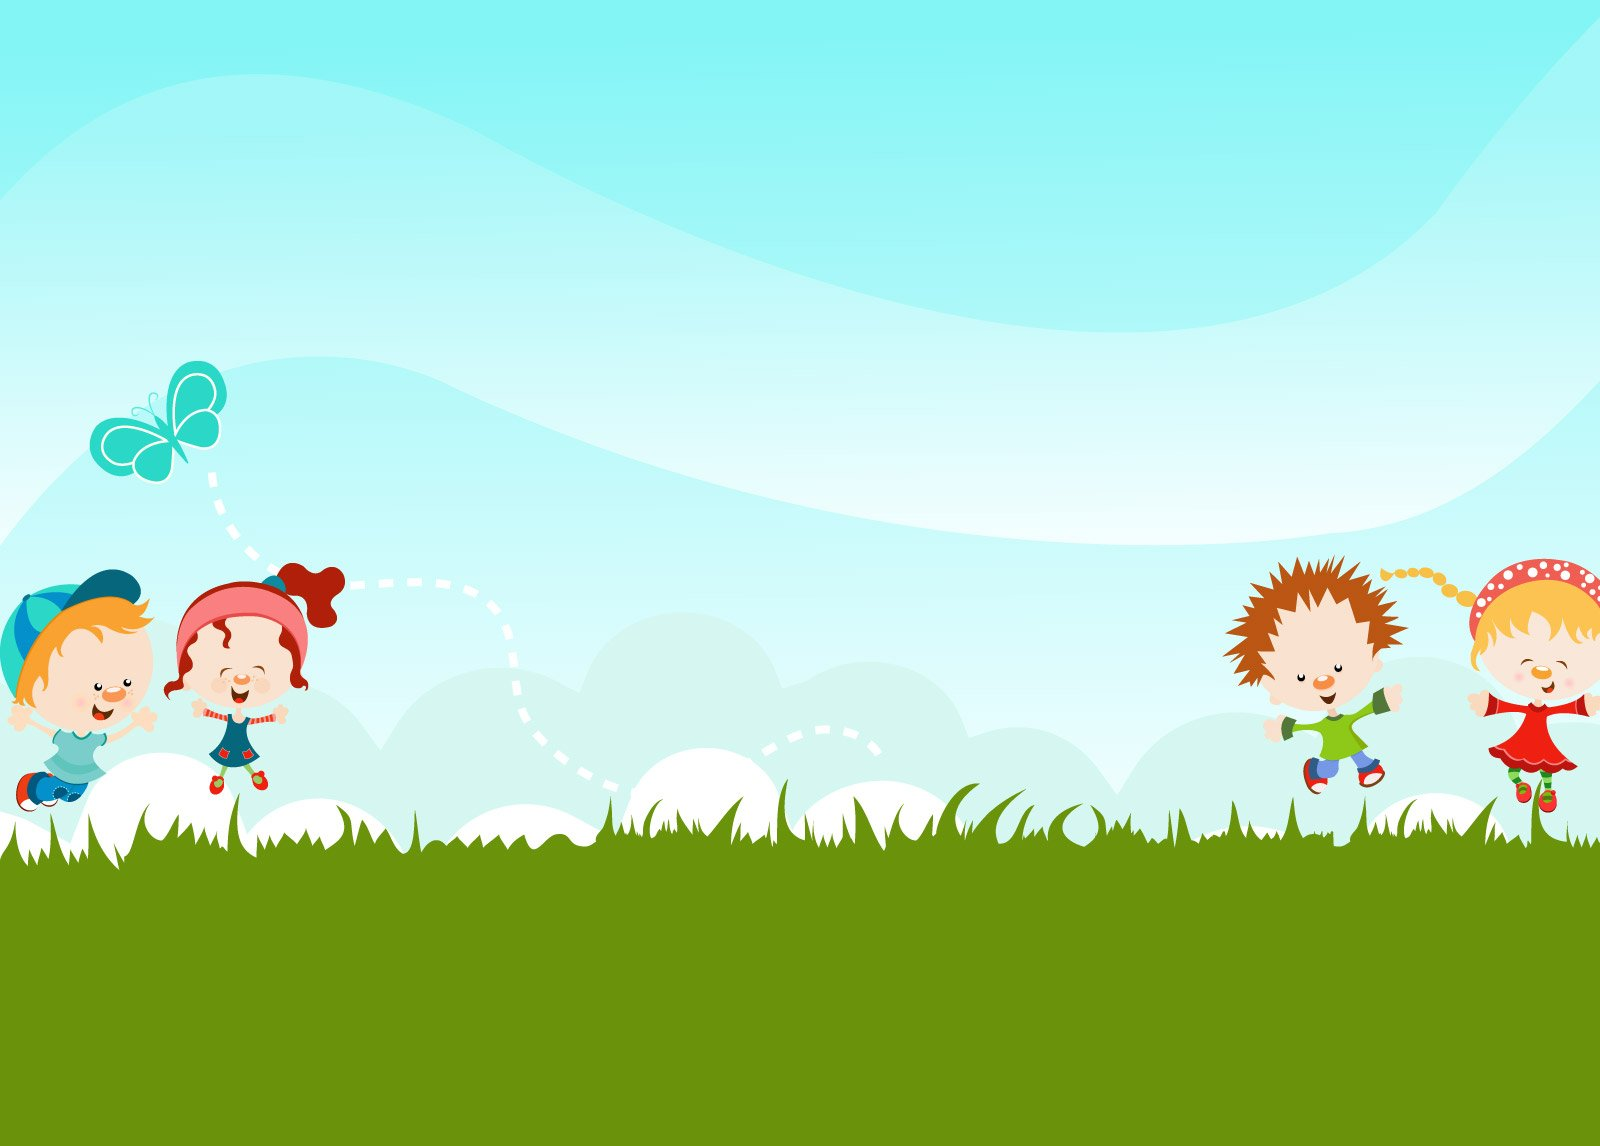 Powerpoint backgrounds for kids